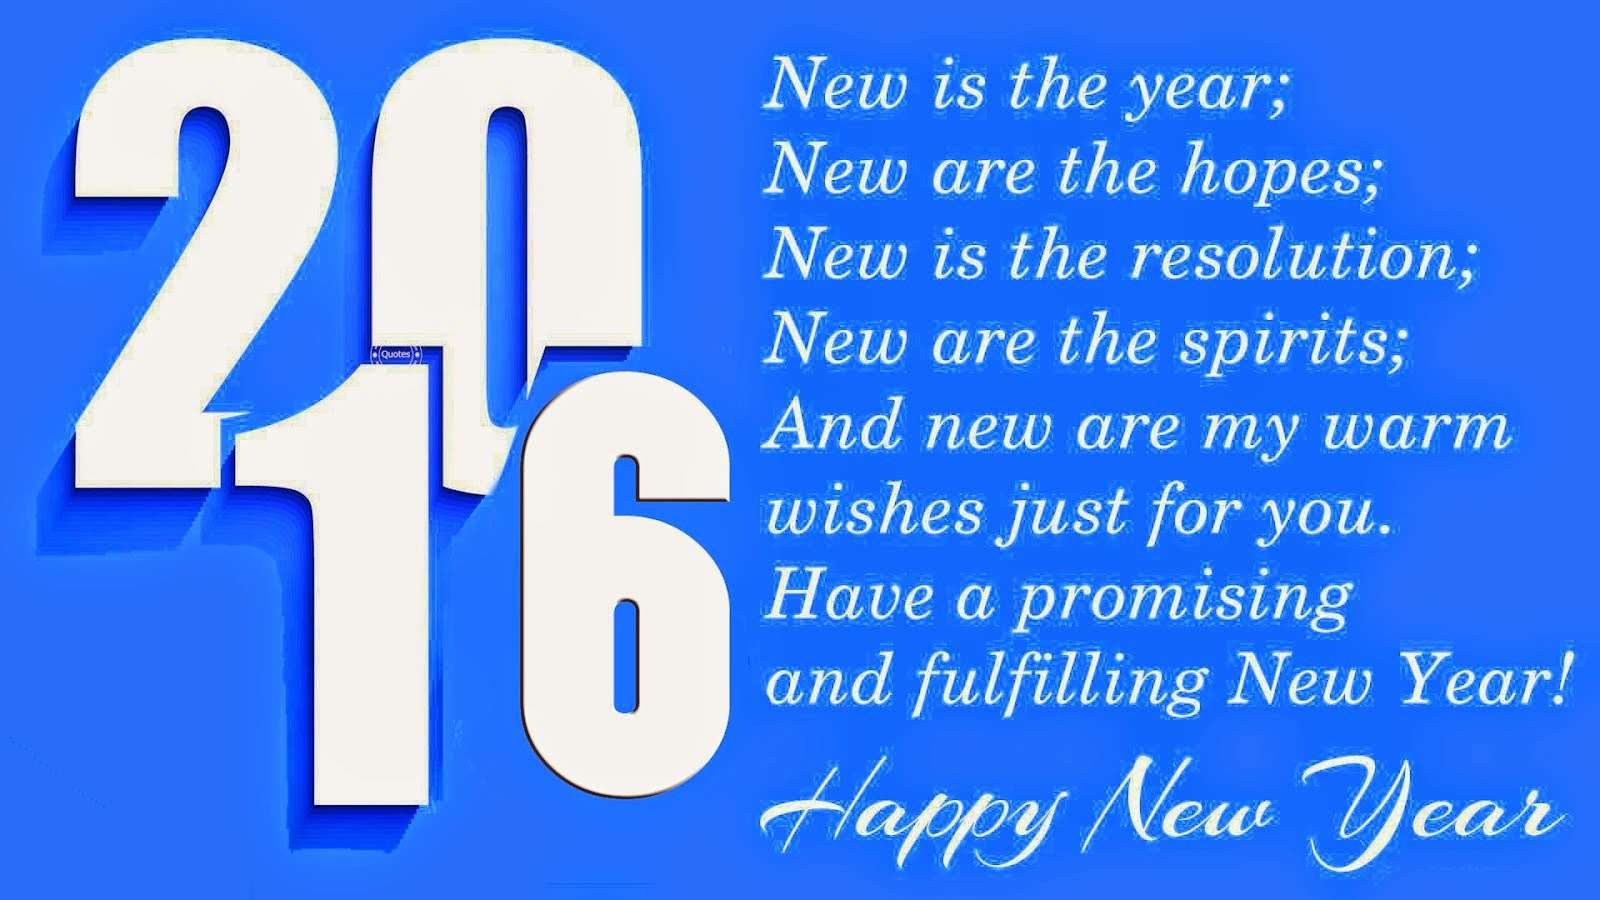 2015 New Year Greeting Messages Choice Image Greetings Card Design